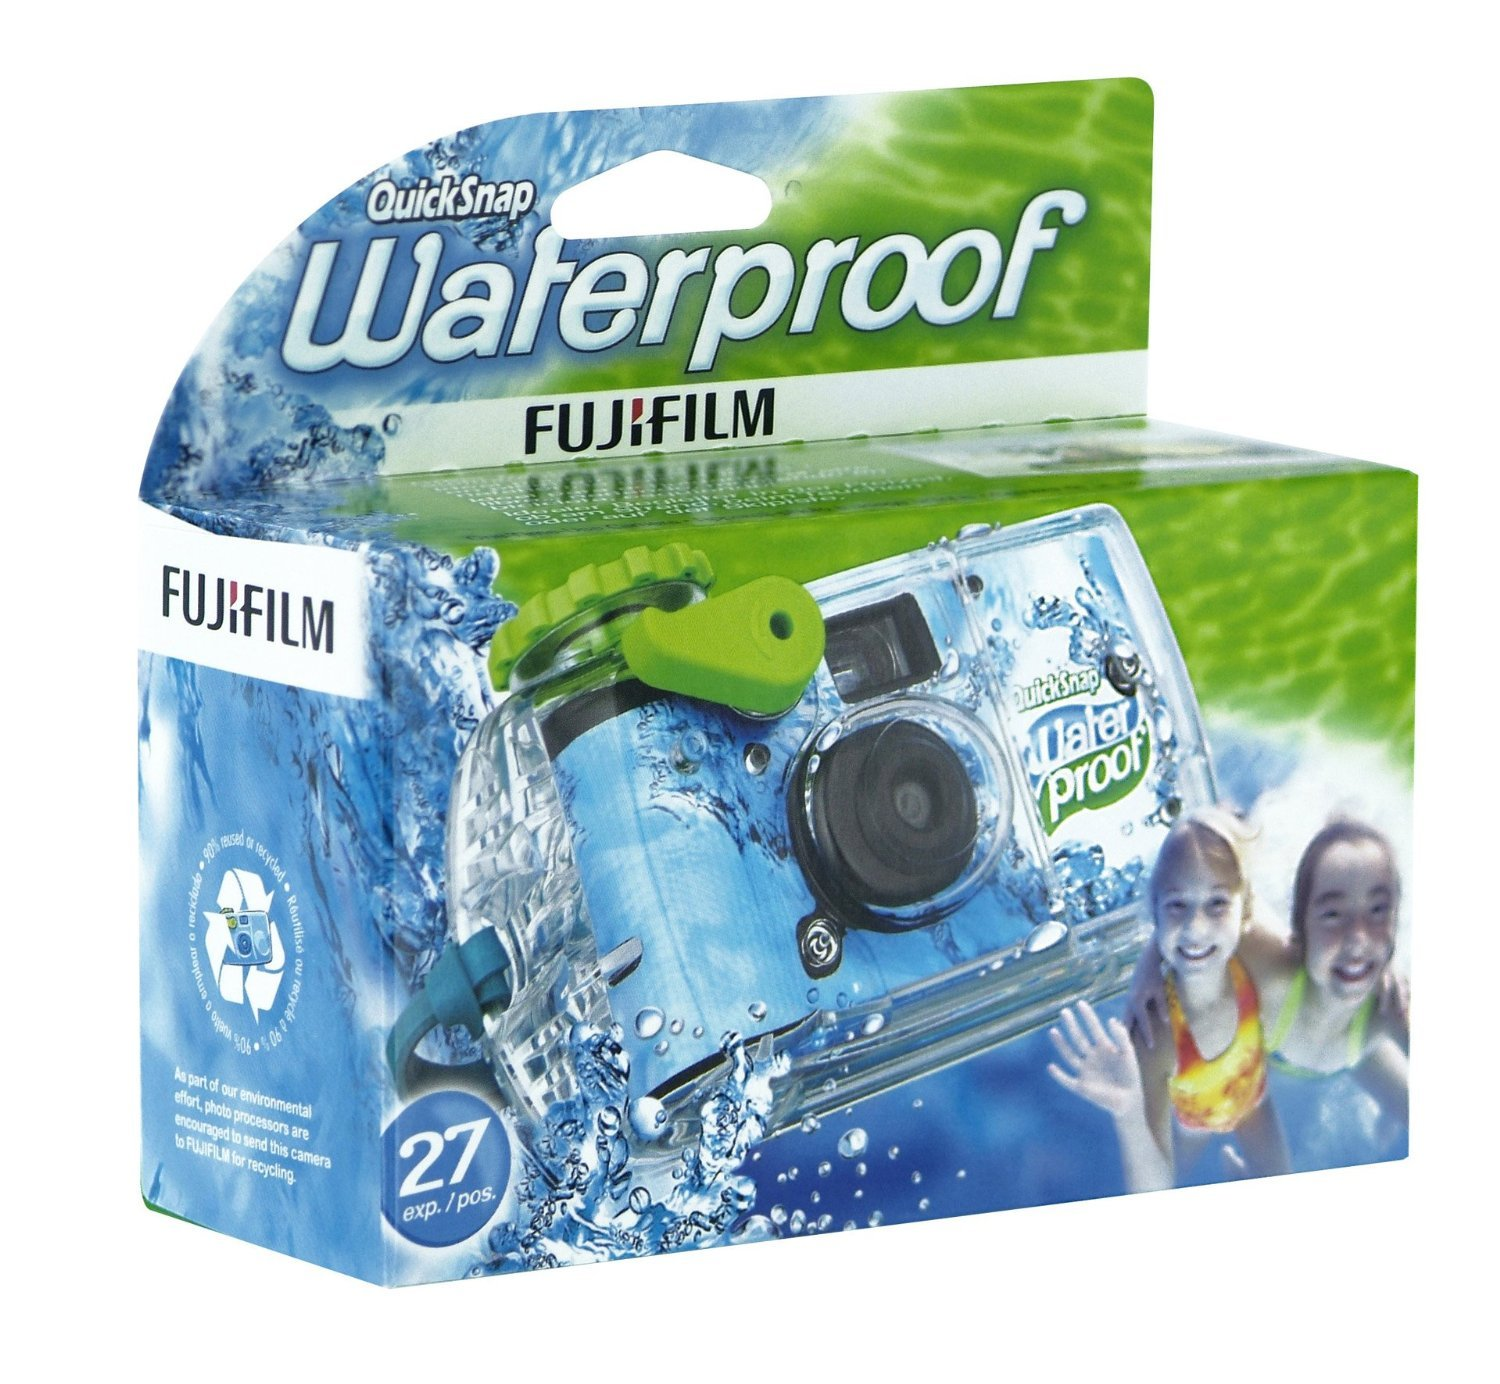 B00004TWM6 Fujifilm Quick Snap Waterproof 27 exp. 35mm Camera 800 film,Blue/Green/white,1 Pack 811wQ7N-rSL